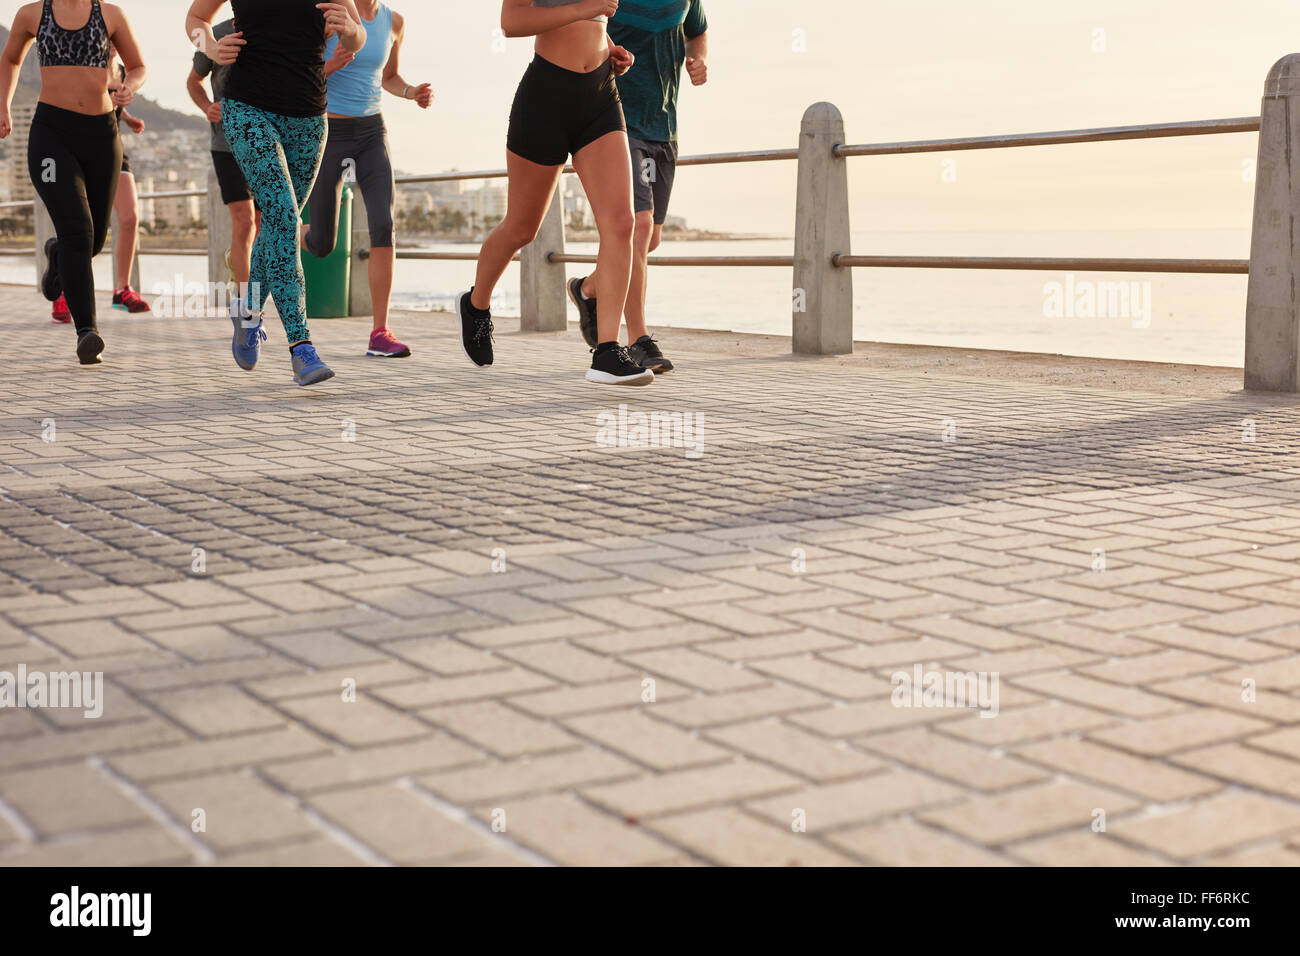 Low section cropped shot of people running on street by the sea. Fitness group training on seaside promenade. - Stock Image